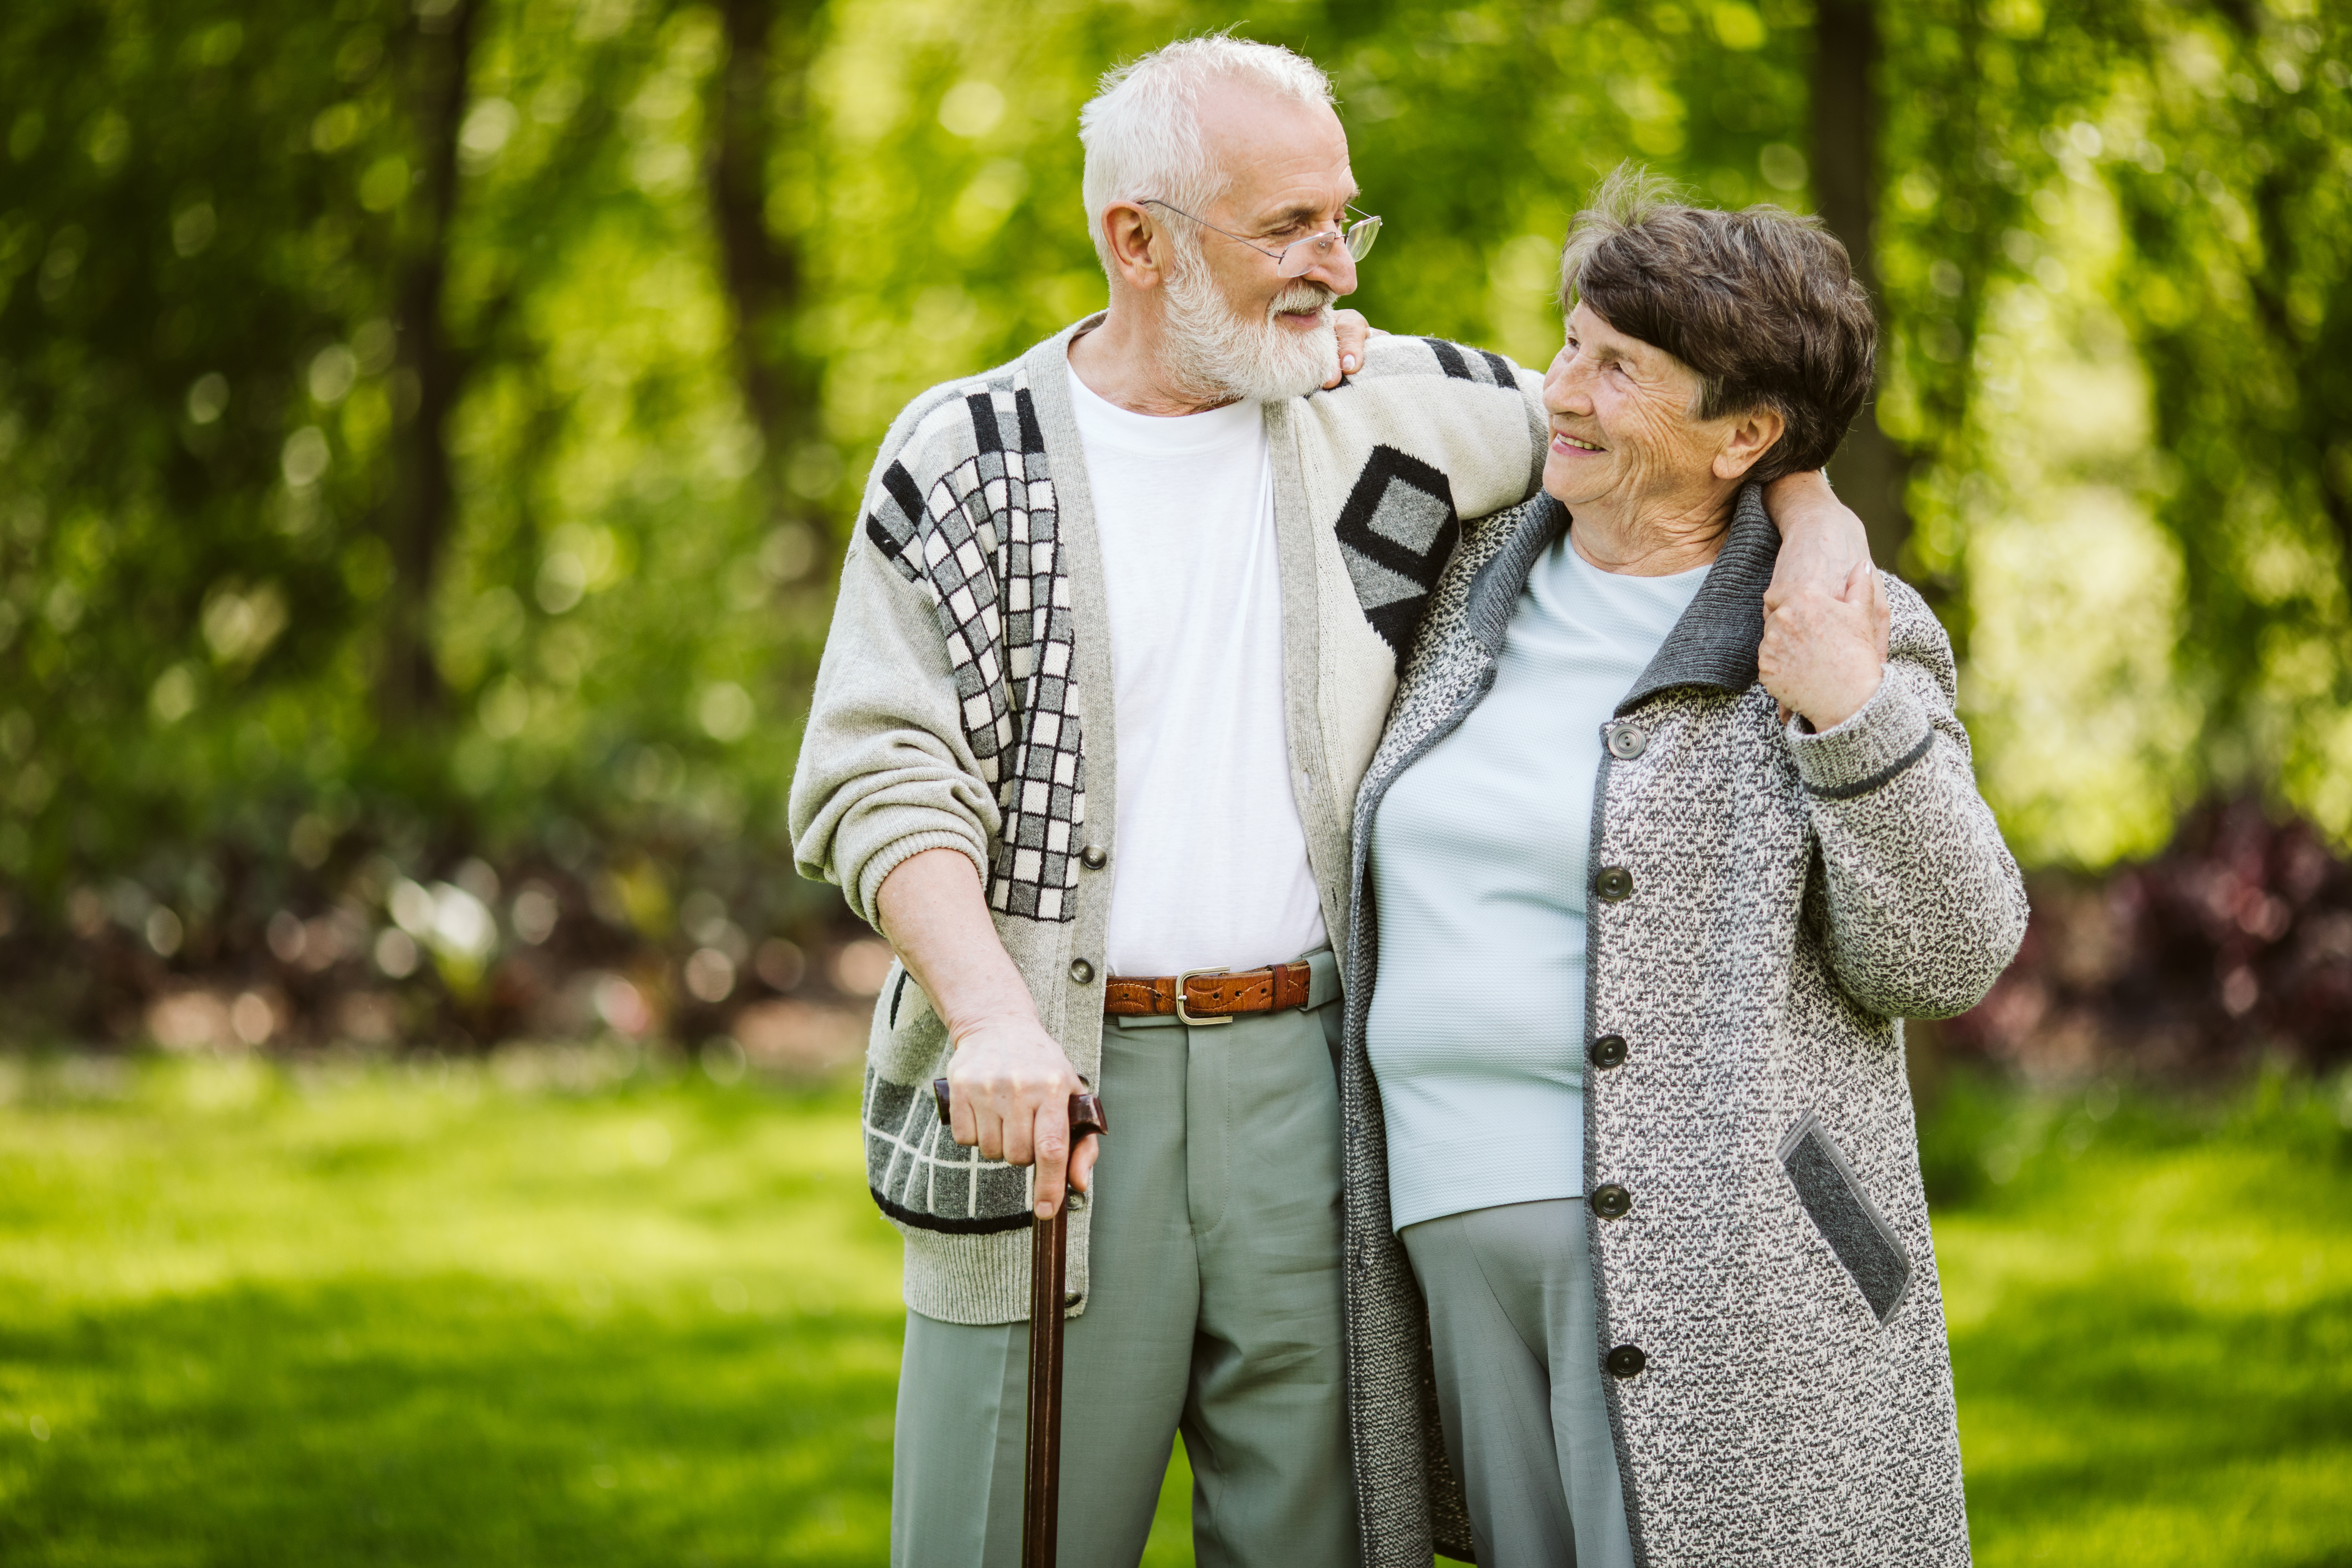 Elderly couple during a walk in the park